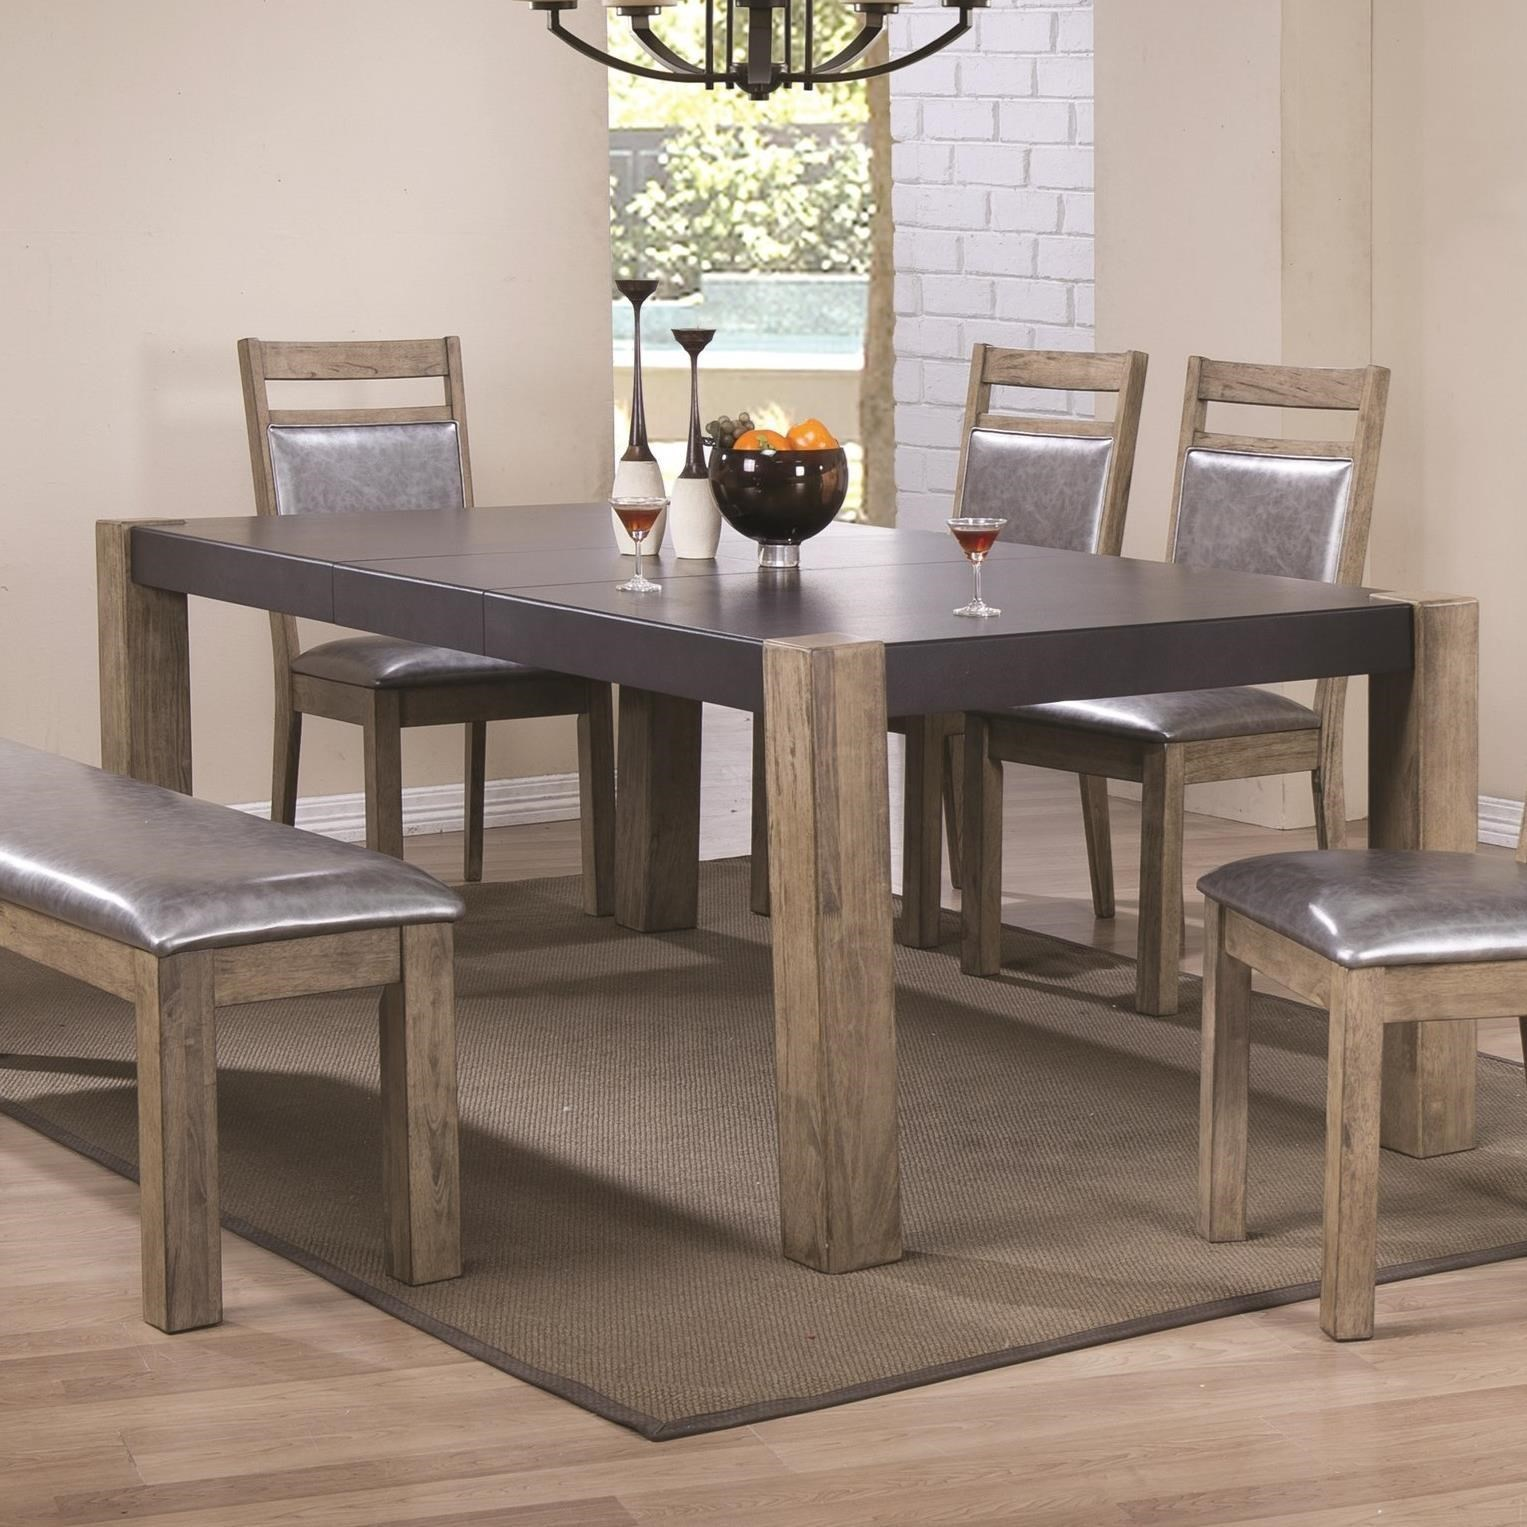 Coaster ludolf 107131 two tone finish dining table with for Dining room leaf